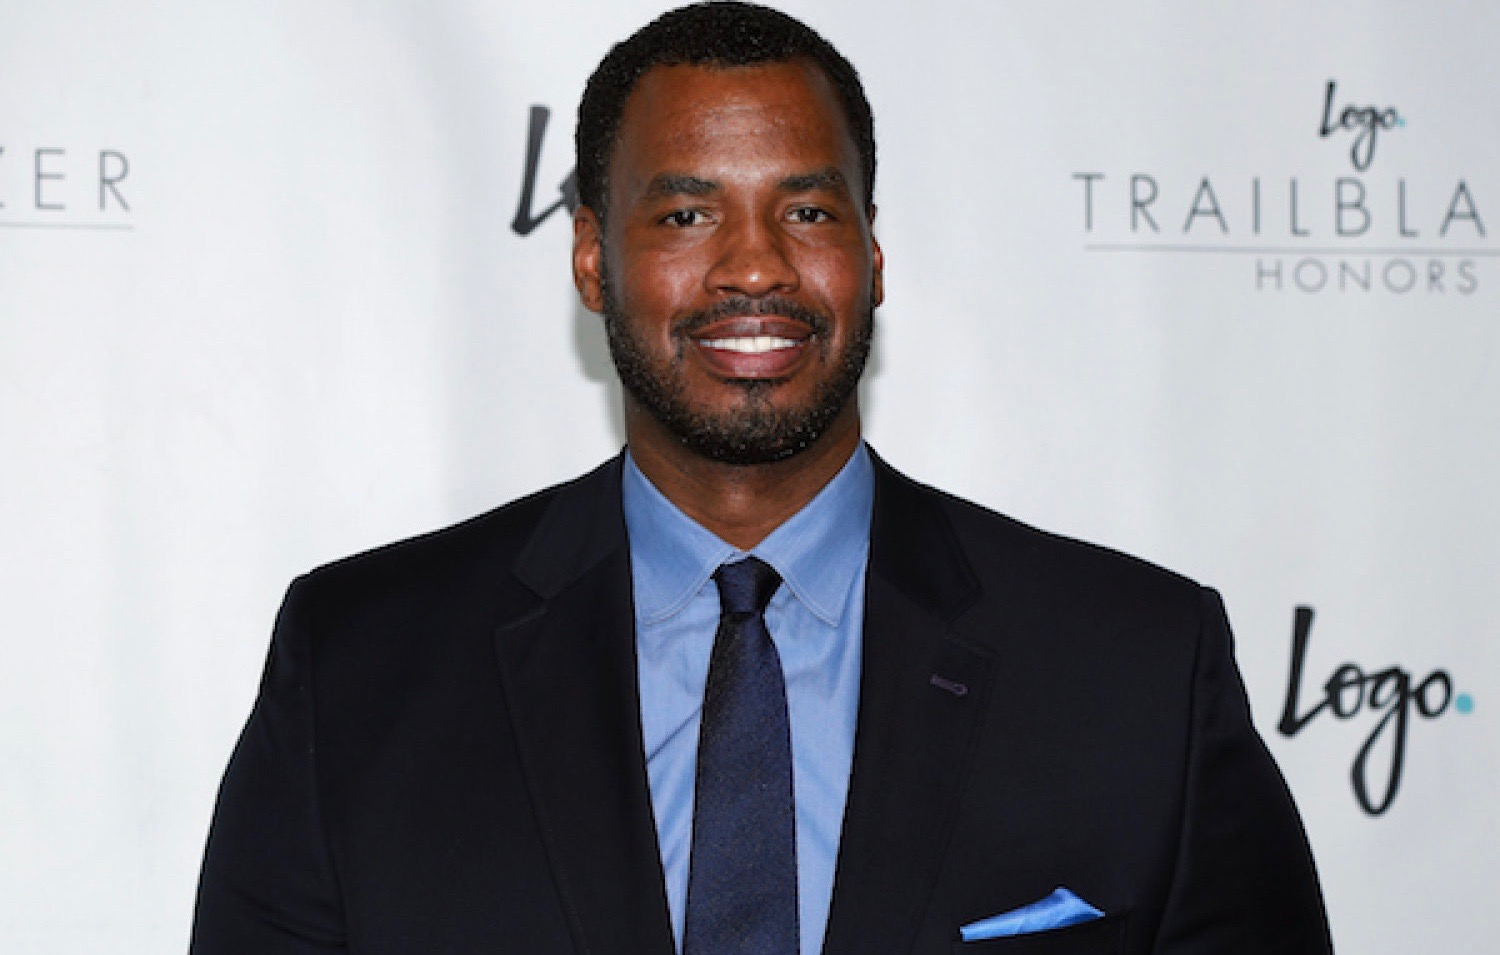 Former NBA player Jason Collins and Secretary of the Army Eric Fanning are attending 2014 Summer Games